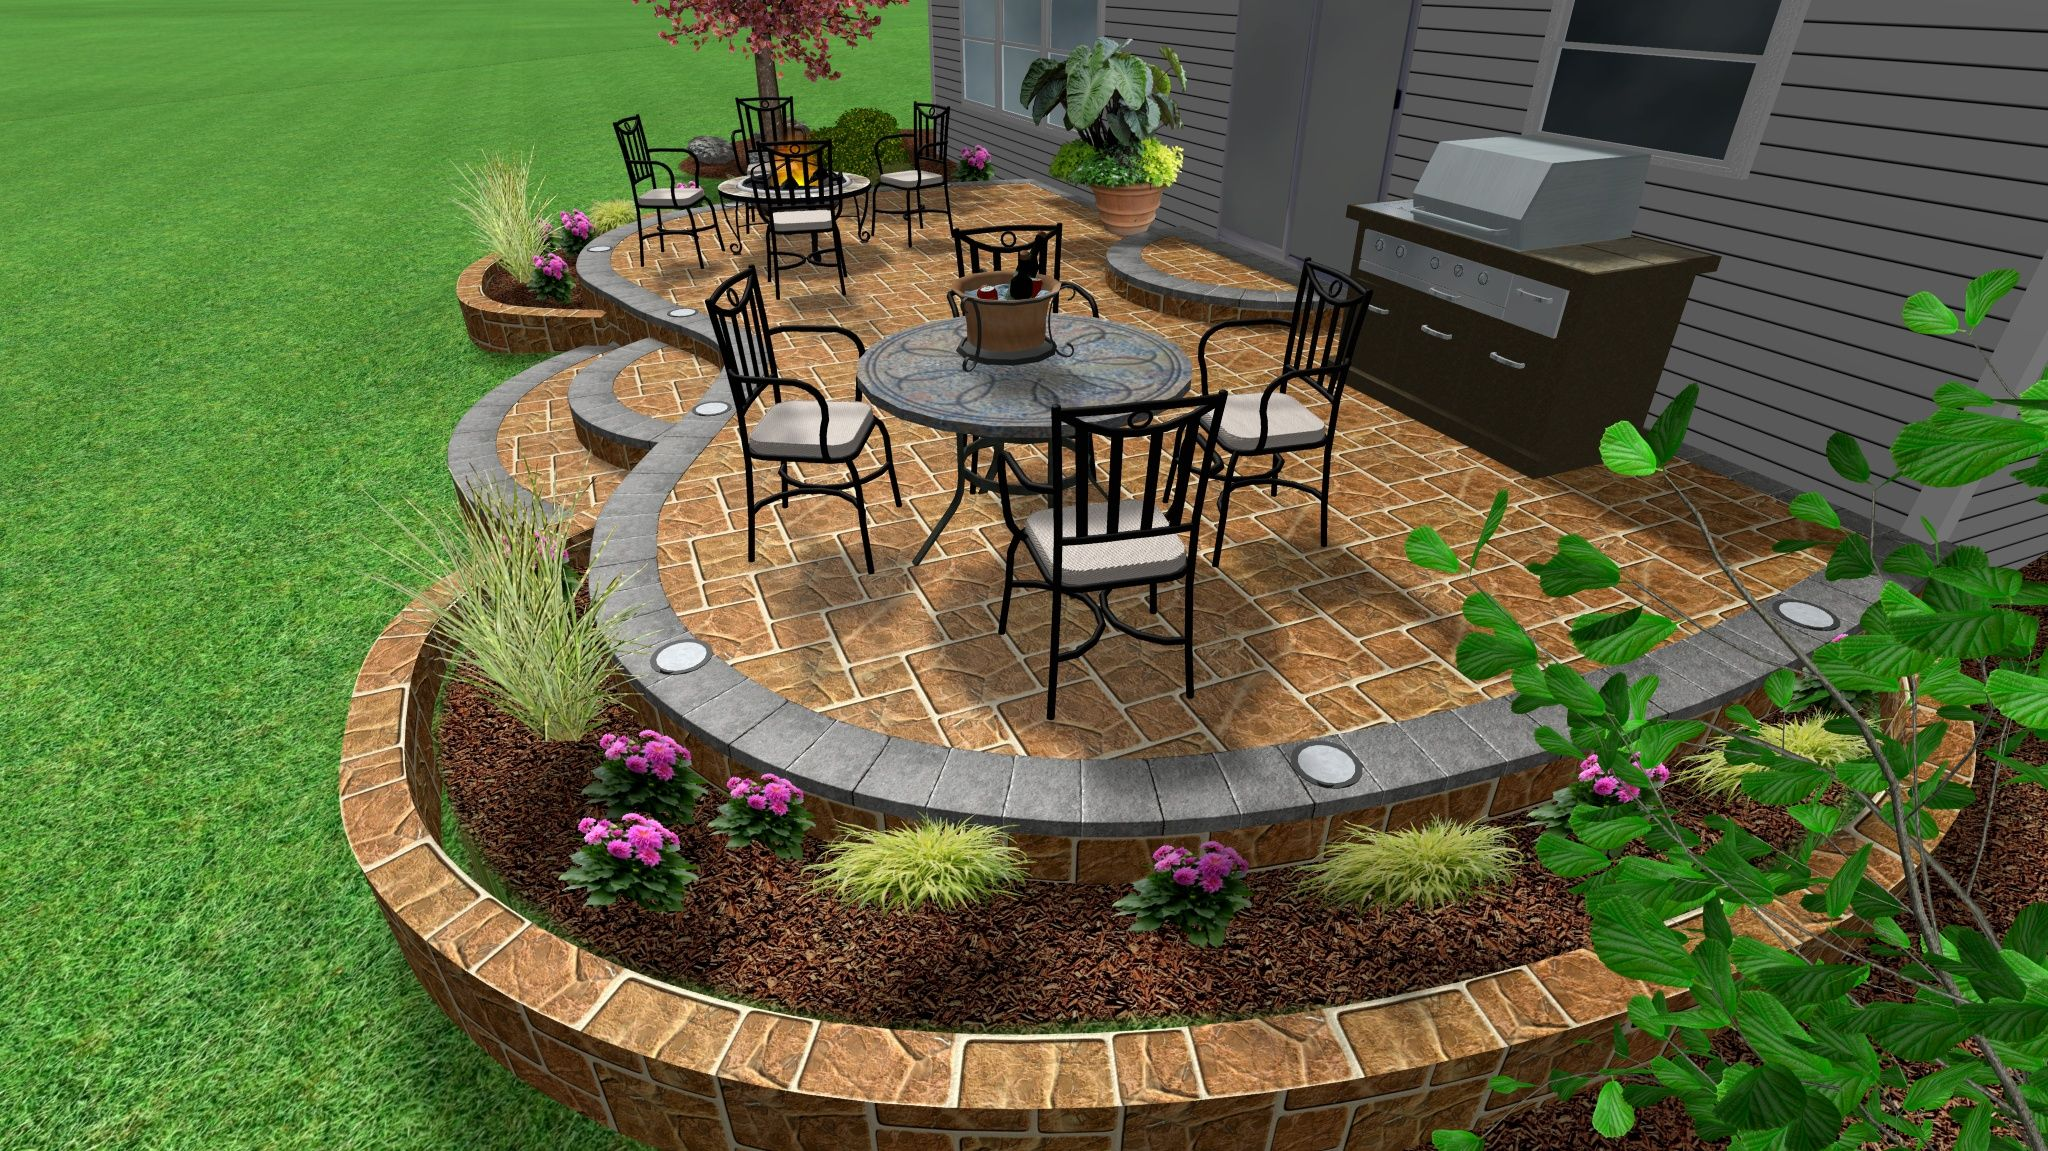 Raised Stamped Concrete Patio and Garden wall. | Outdoor ... on Raised Concrete Patio Ideas id=47298